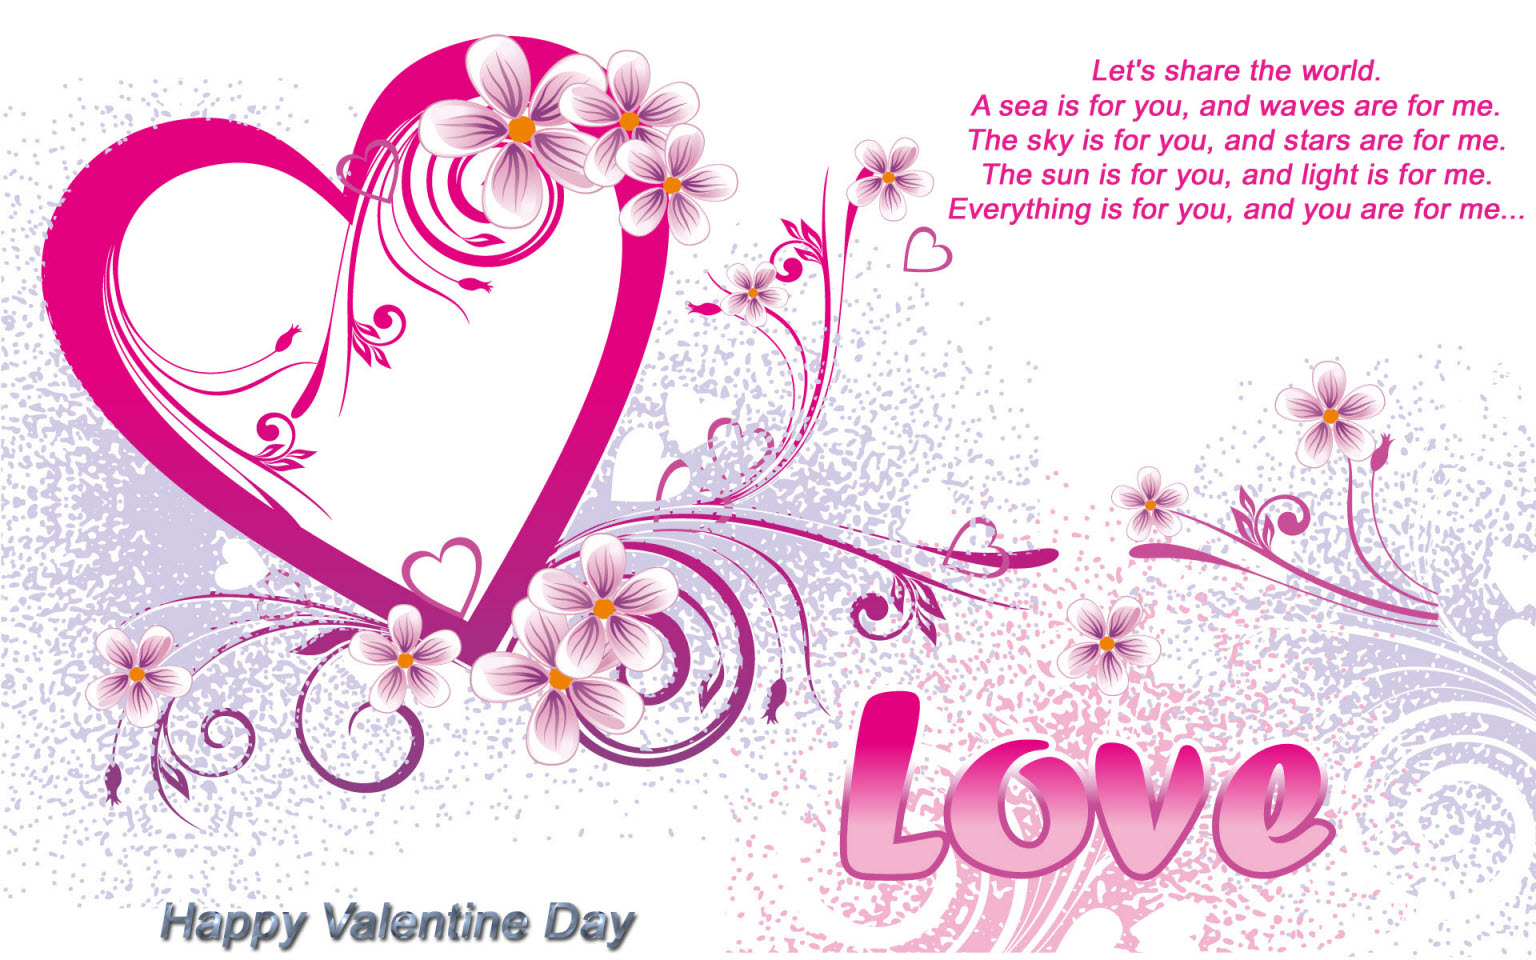 Sweet valentine wishes and quotes messages for boyfriend and happy valentine greetings and text messages for friends kristyandbryce Gallery